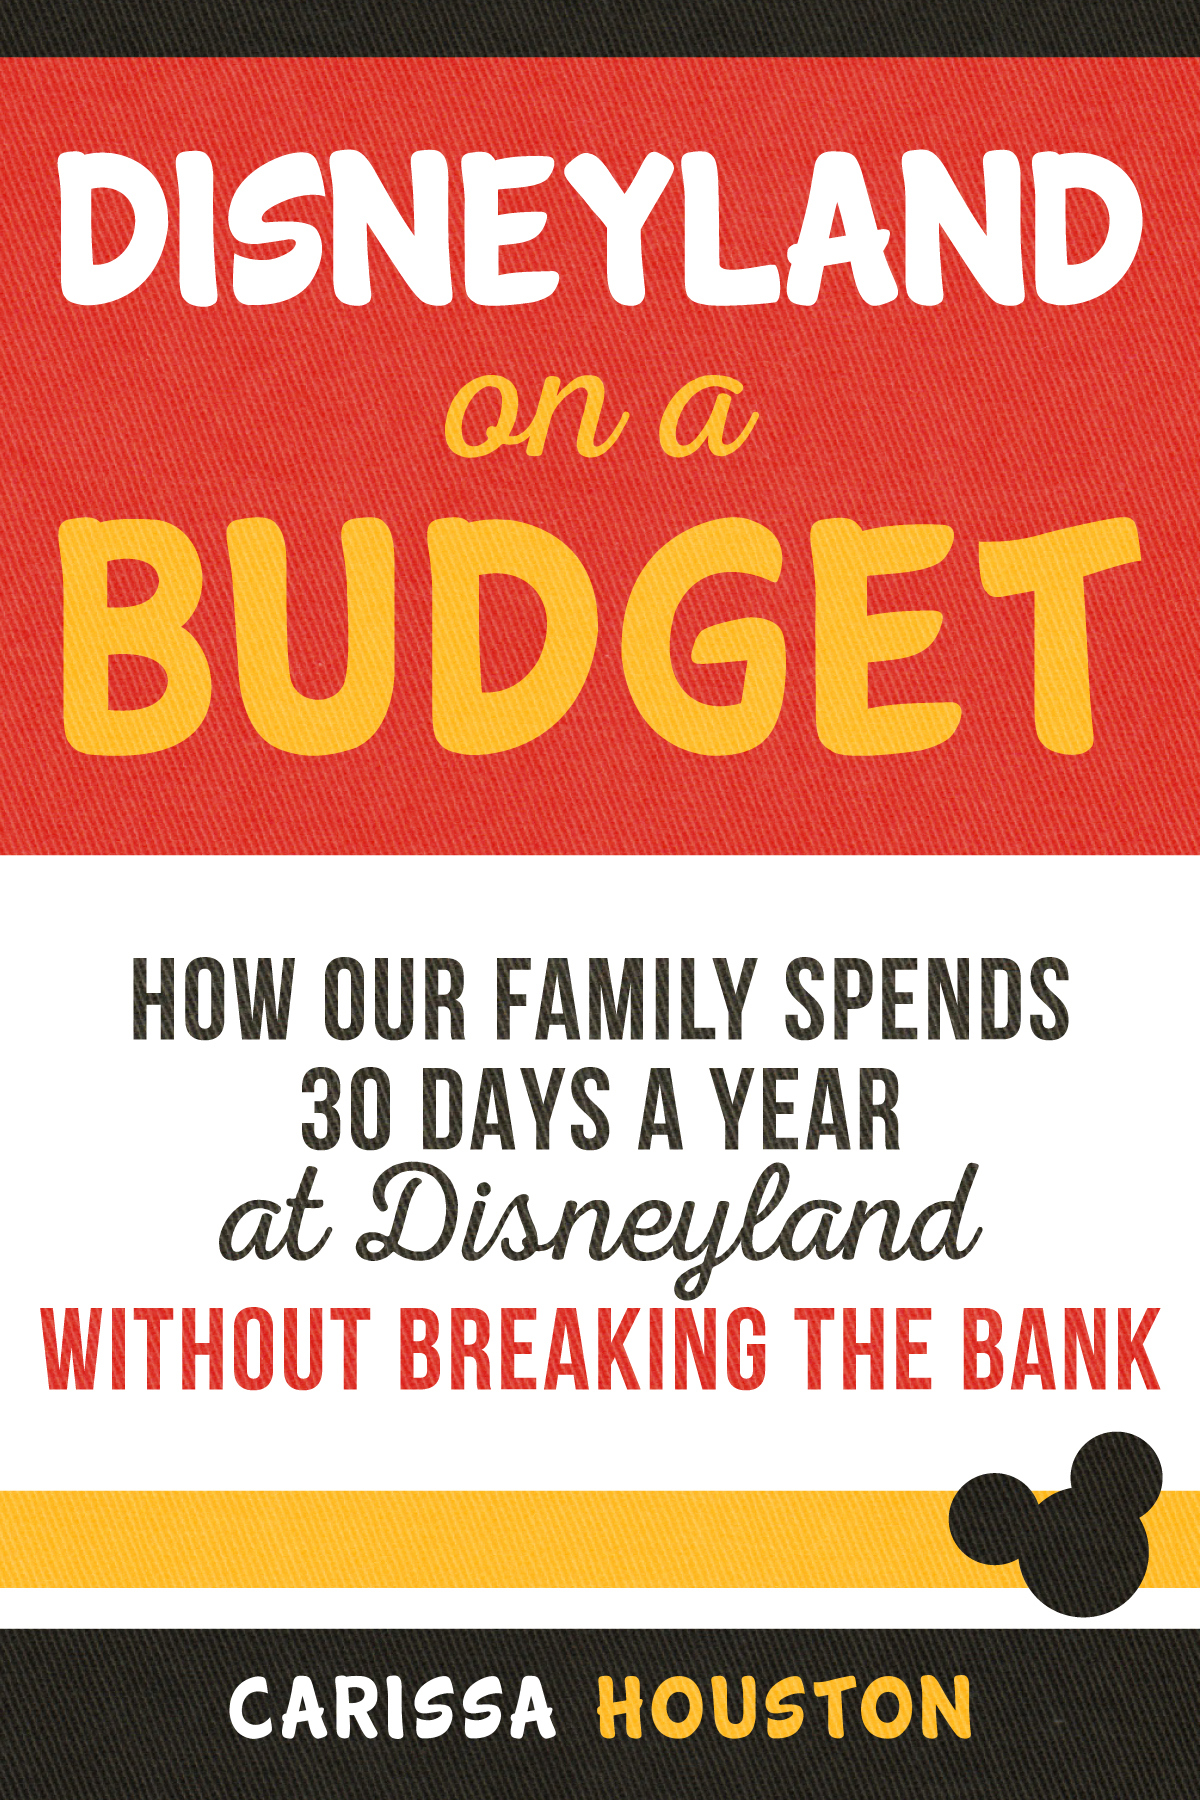 Disneyland on a Budget: How Our Family Spends 30 Days a Year at Disneyland Without Breaking the Bank - Build your vacation fund from $0 to Disney! author Carissa Houston